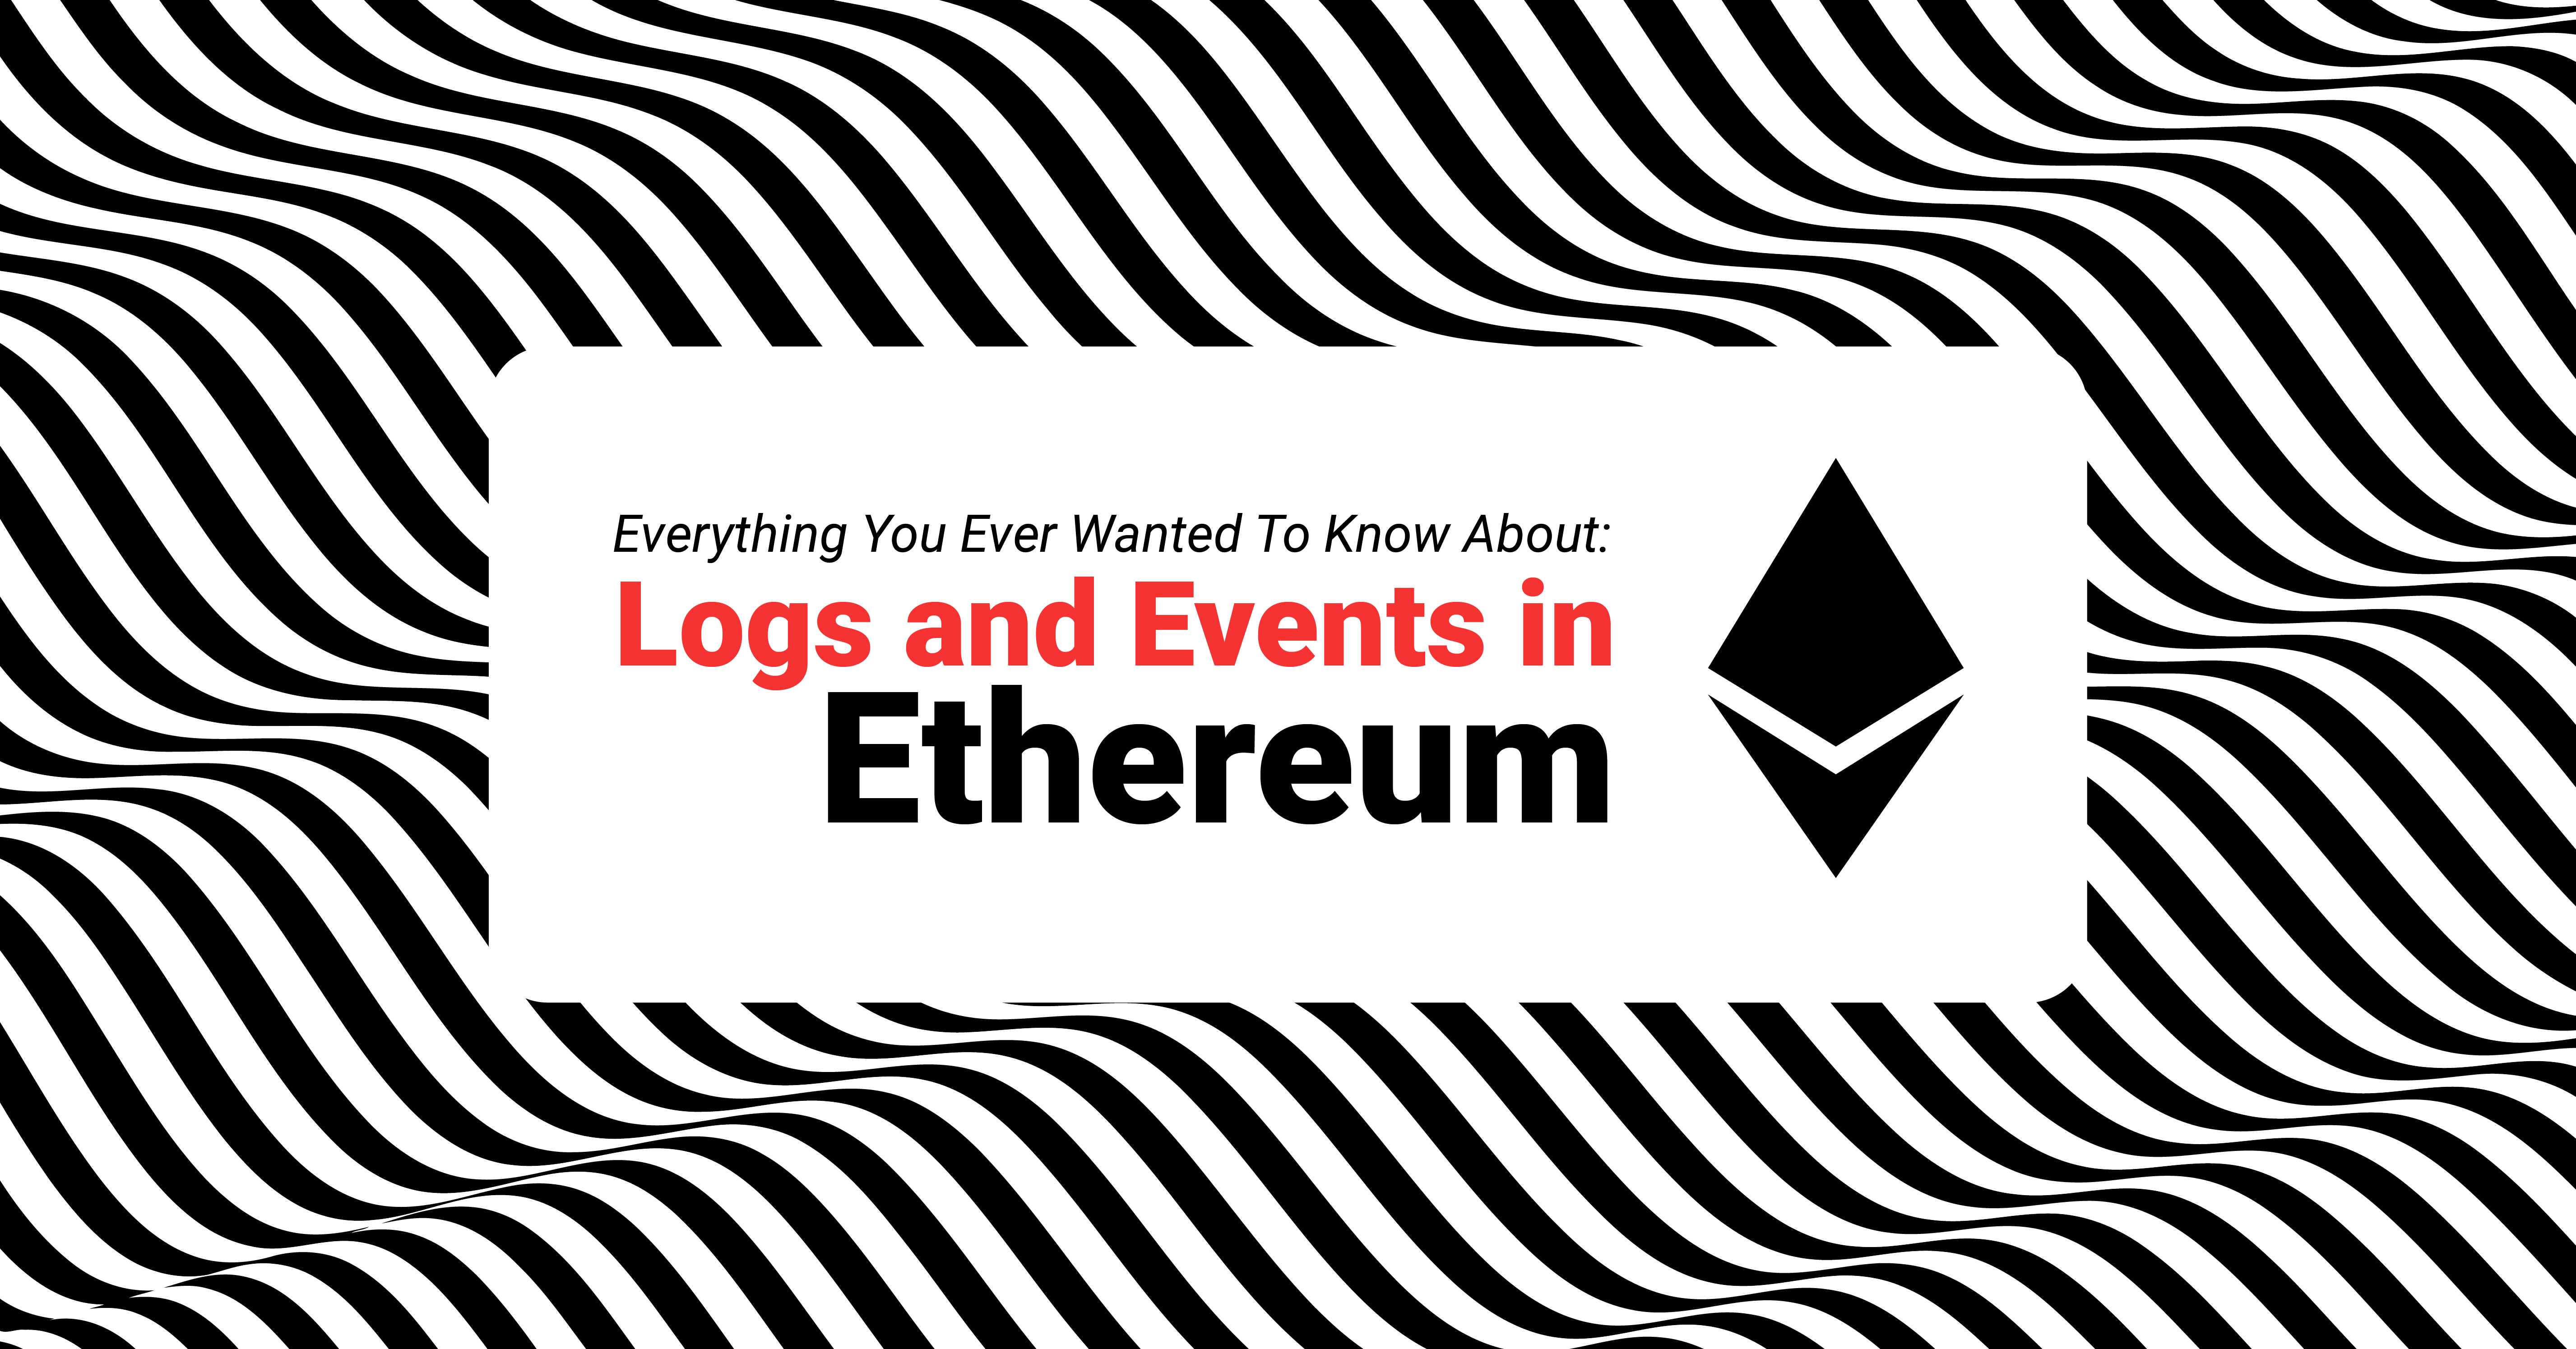 Everything You Ever Wanted to Know About Events and Logs on Ethereum